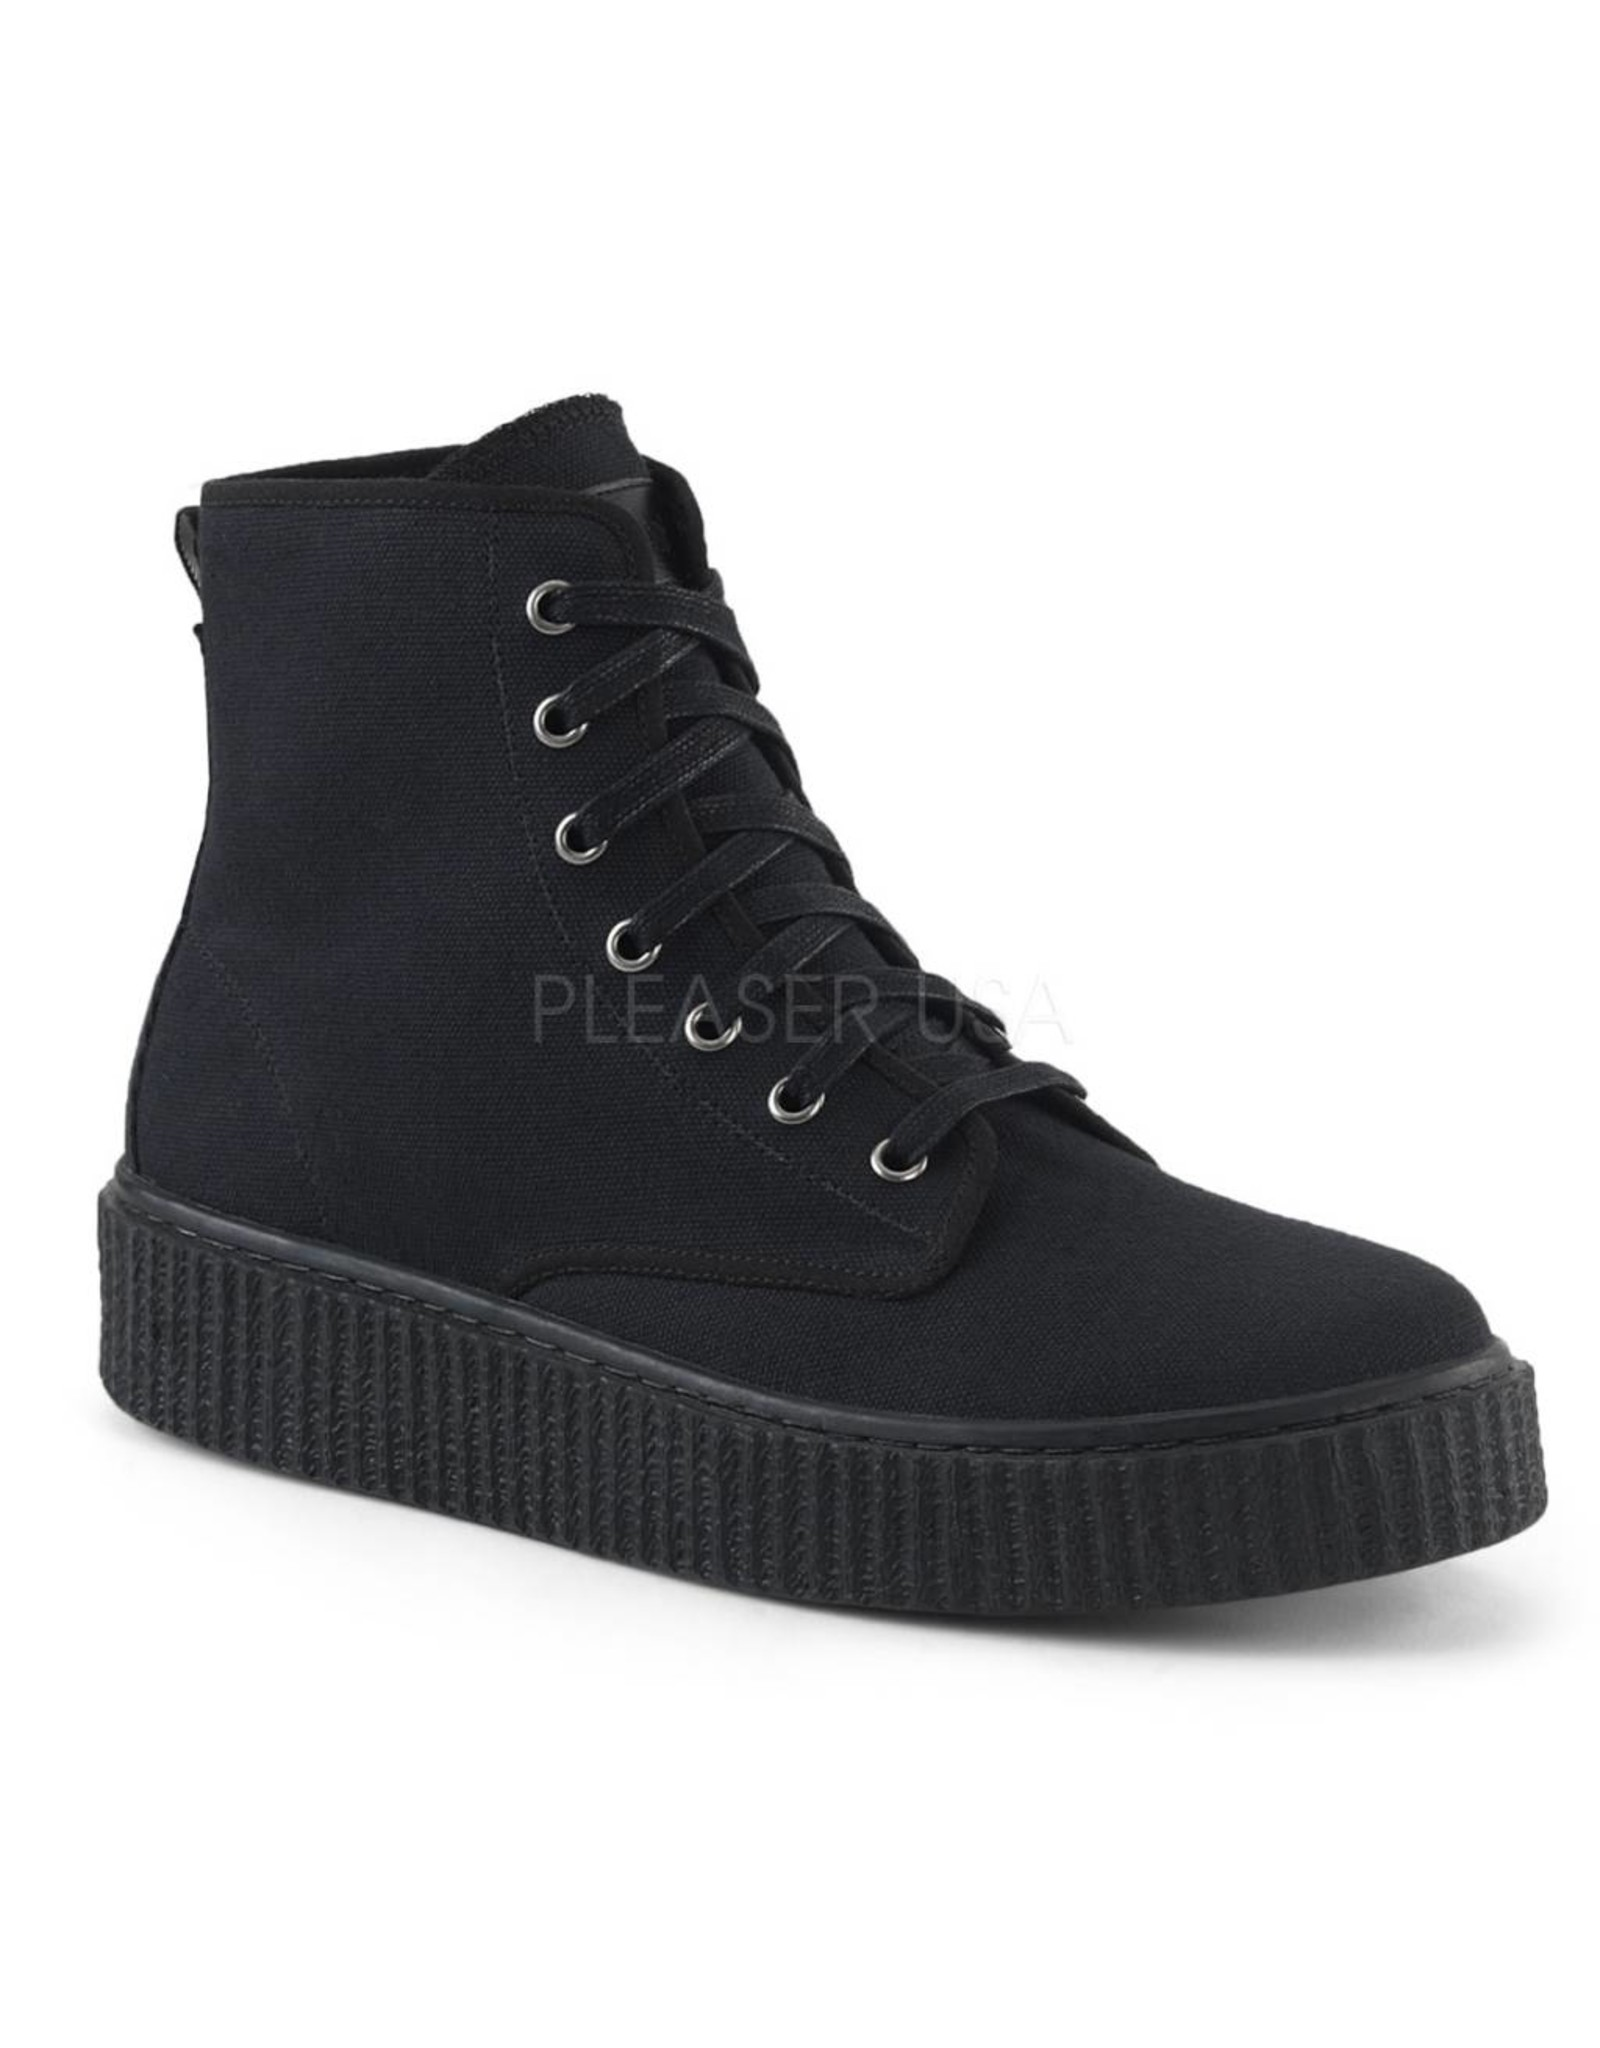 "DEMONIA SNEEKER-201 1 1/2"" Platform Creeper Sneaker, Full Inside Metal Zipper Closure D28BC"